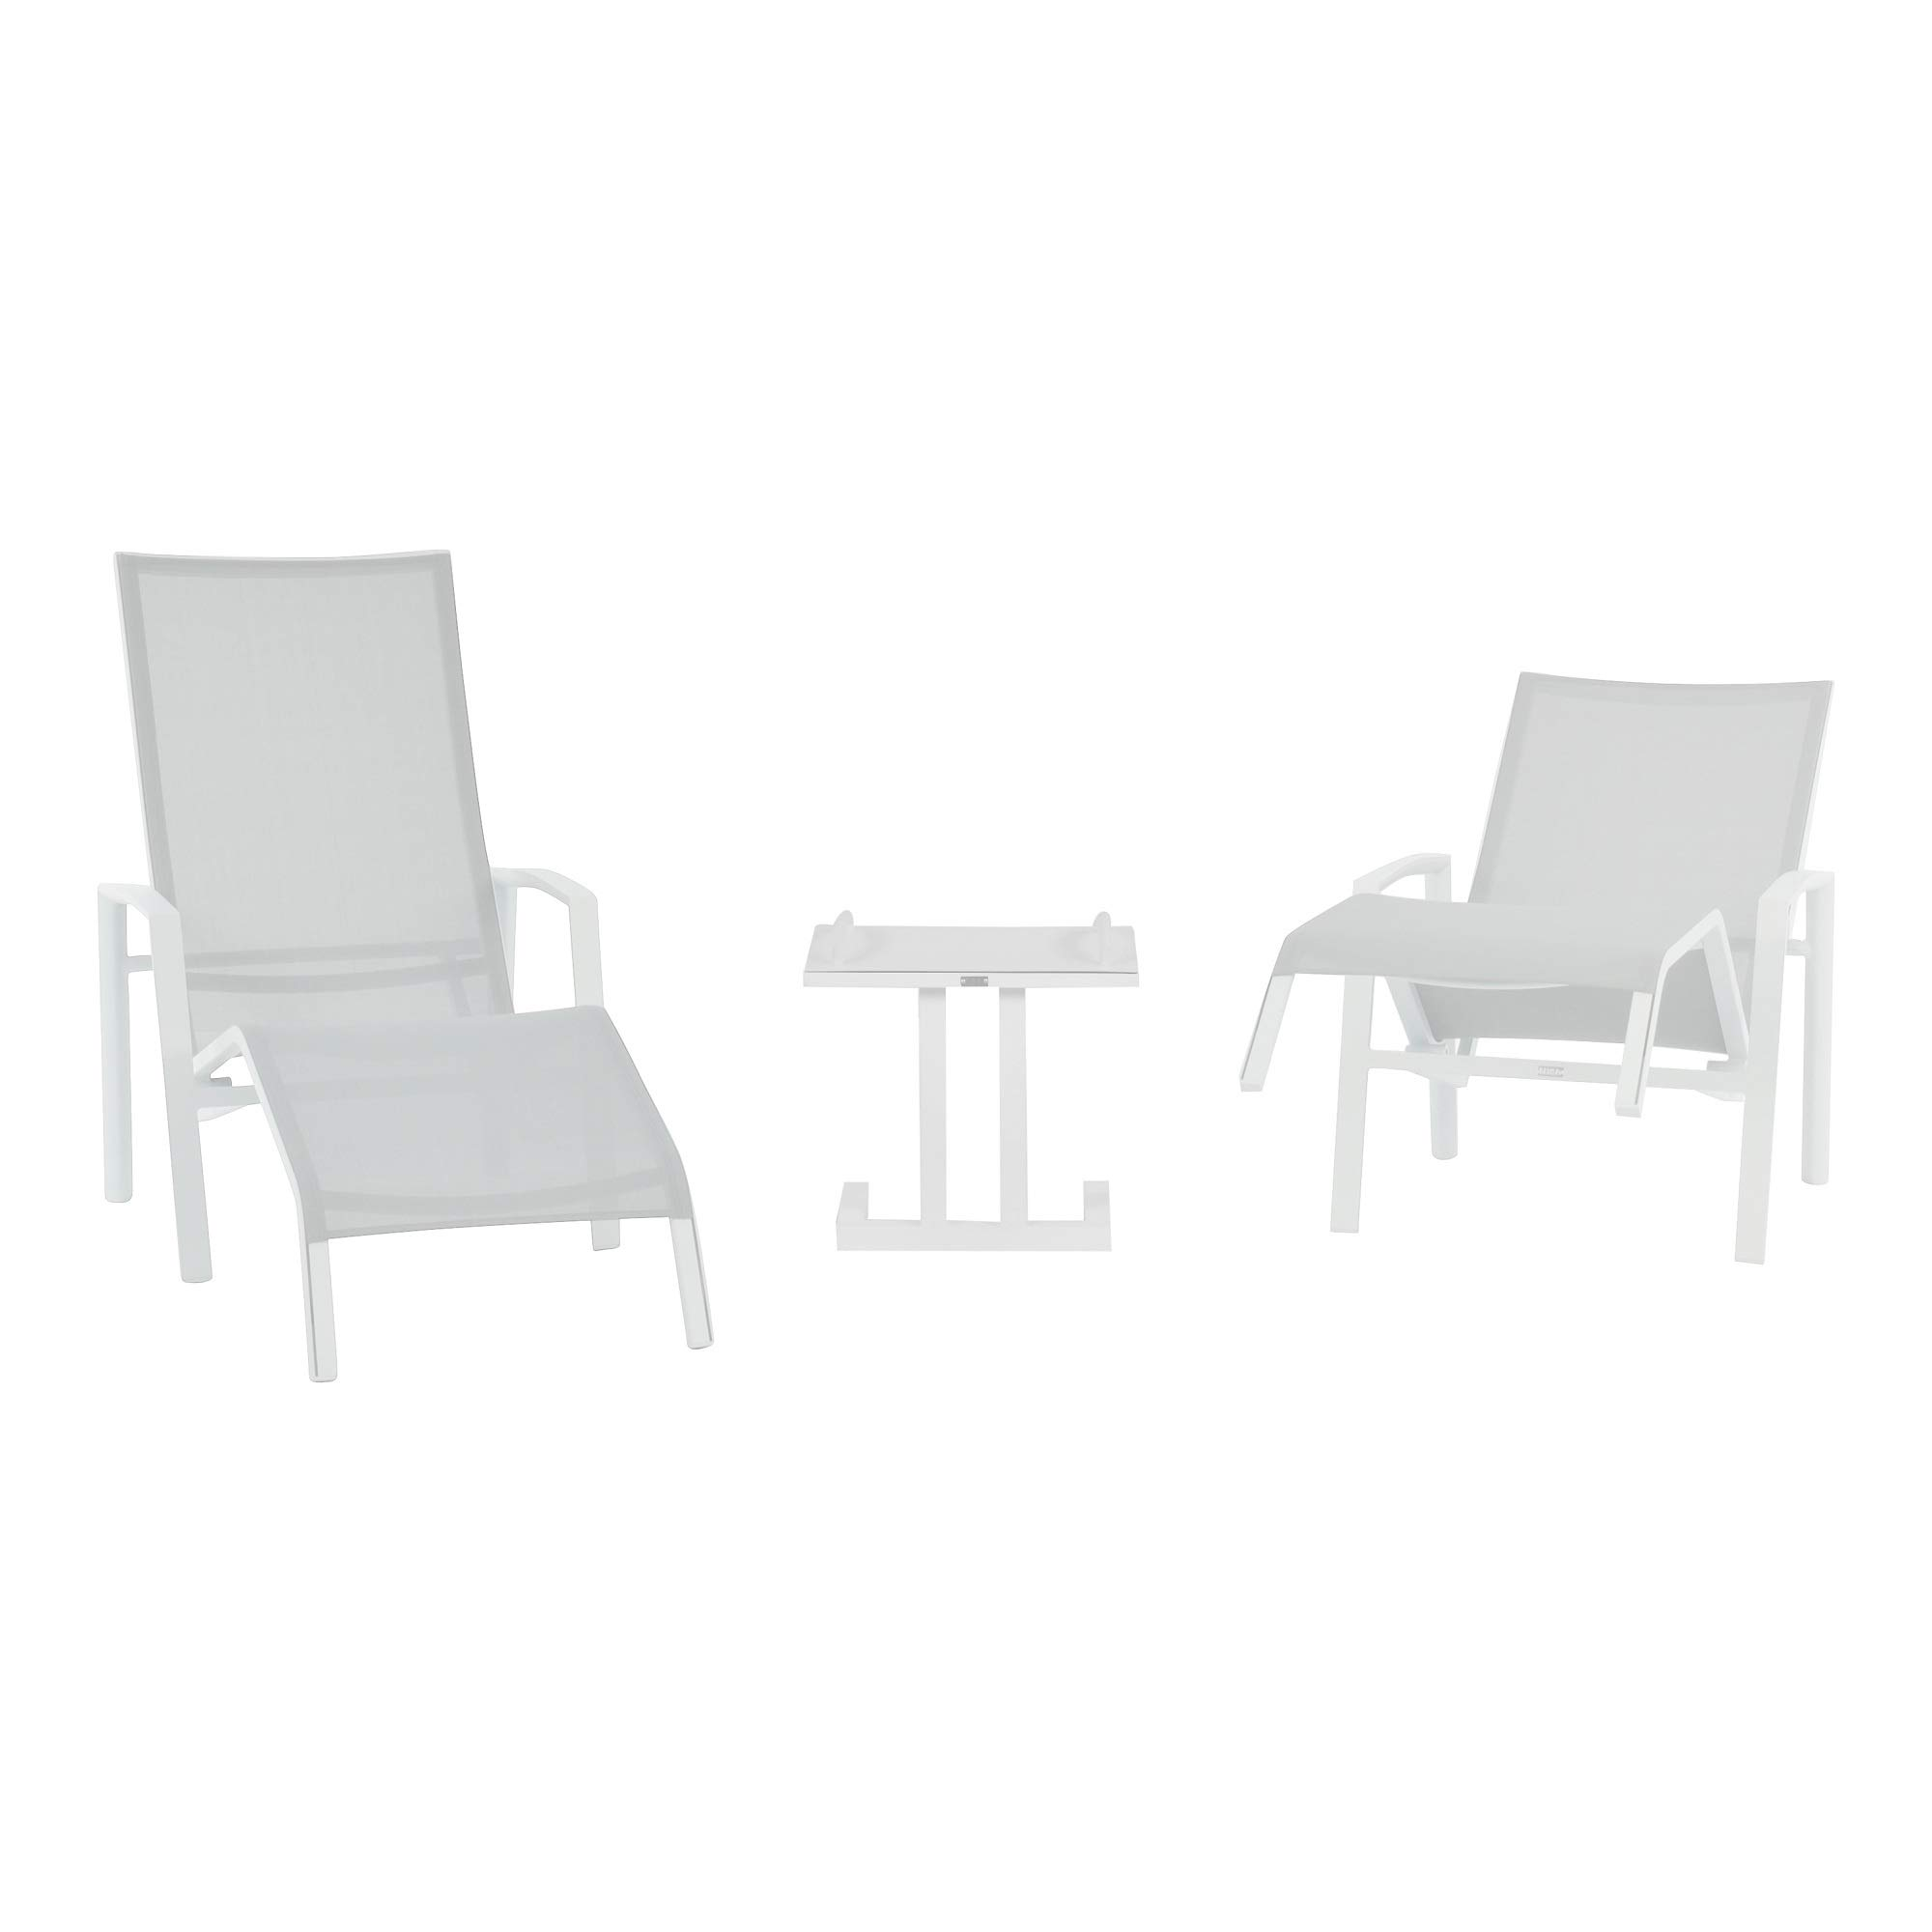 CC Outdoor Living 3-Piece Set Patio Timber Relax 2 Position Spring White Chair 51""